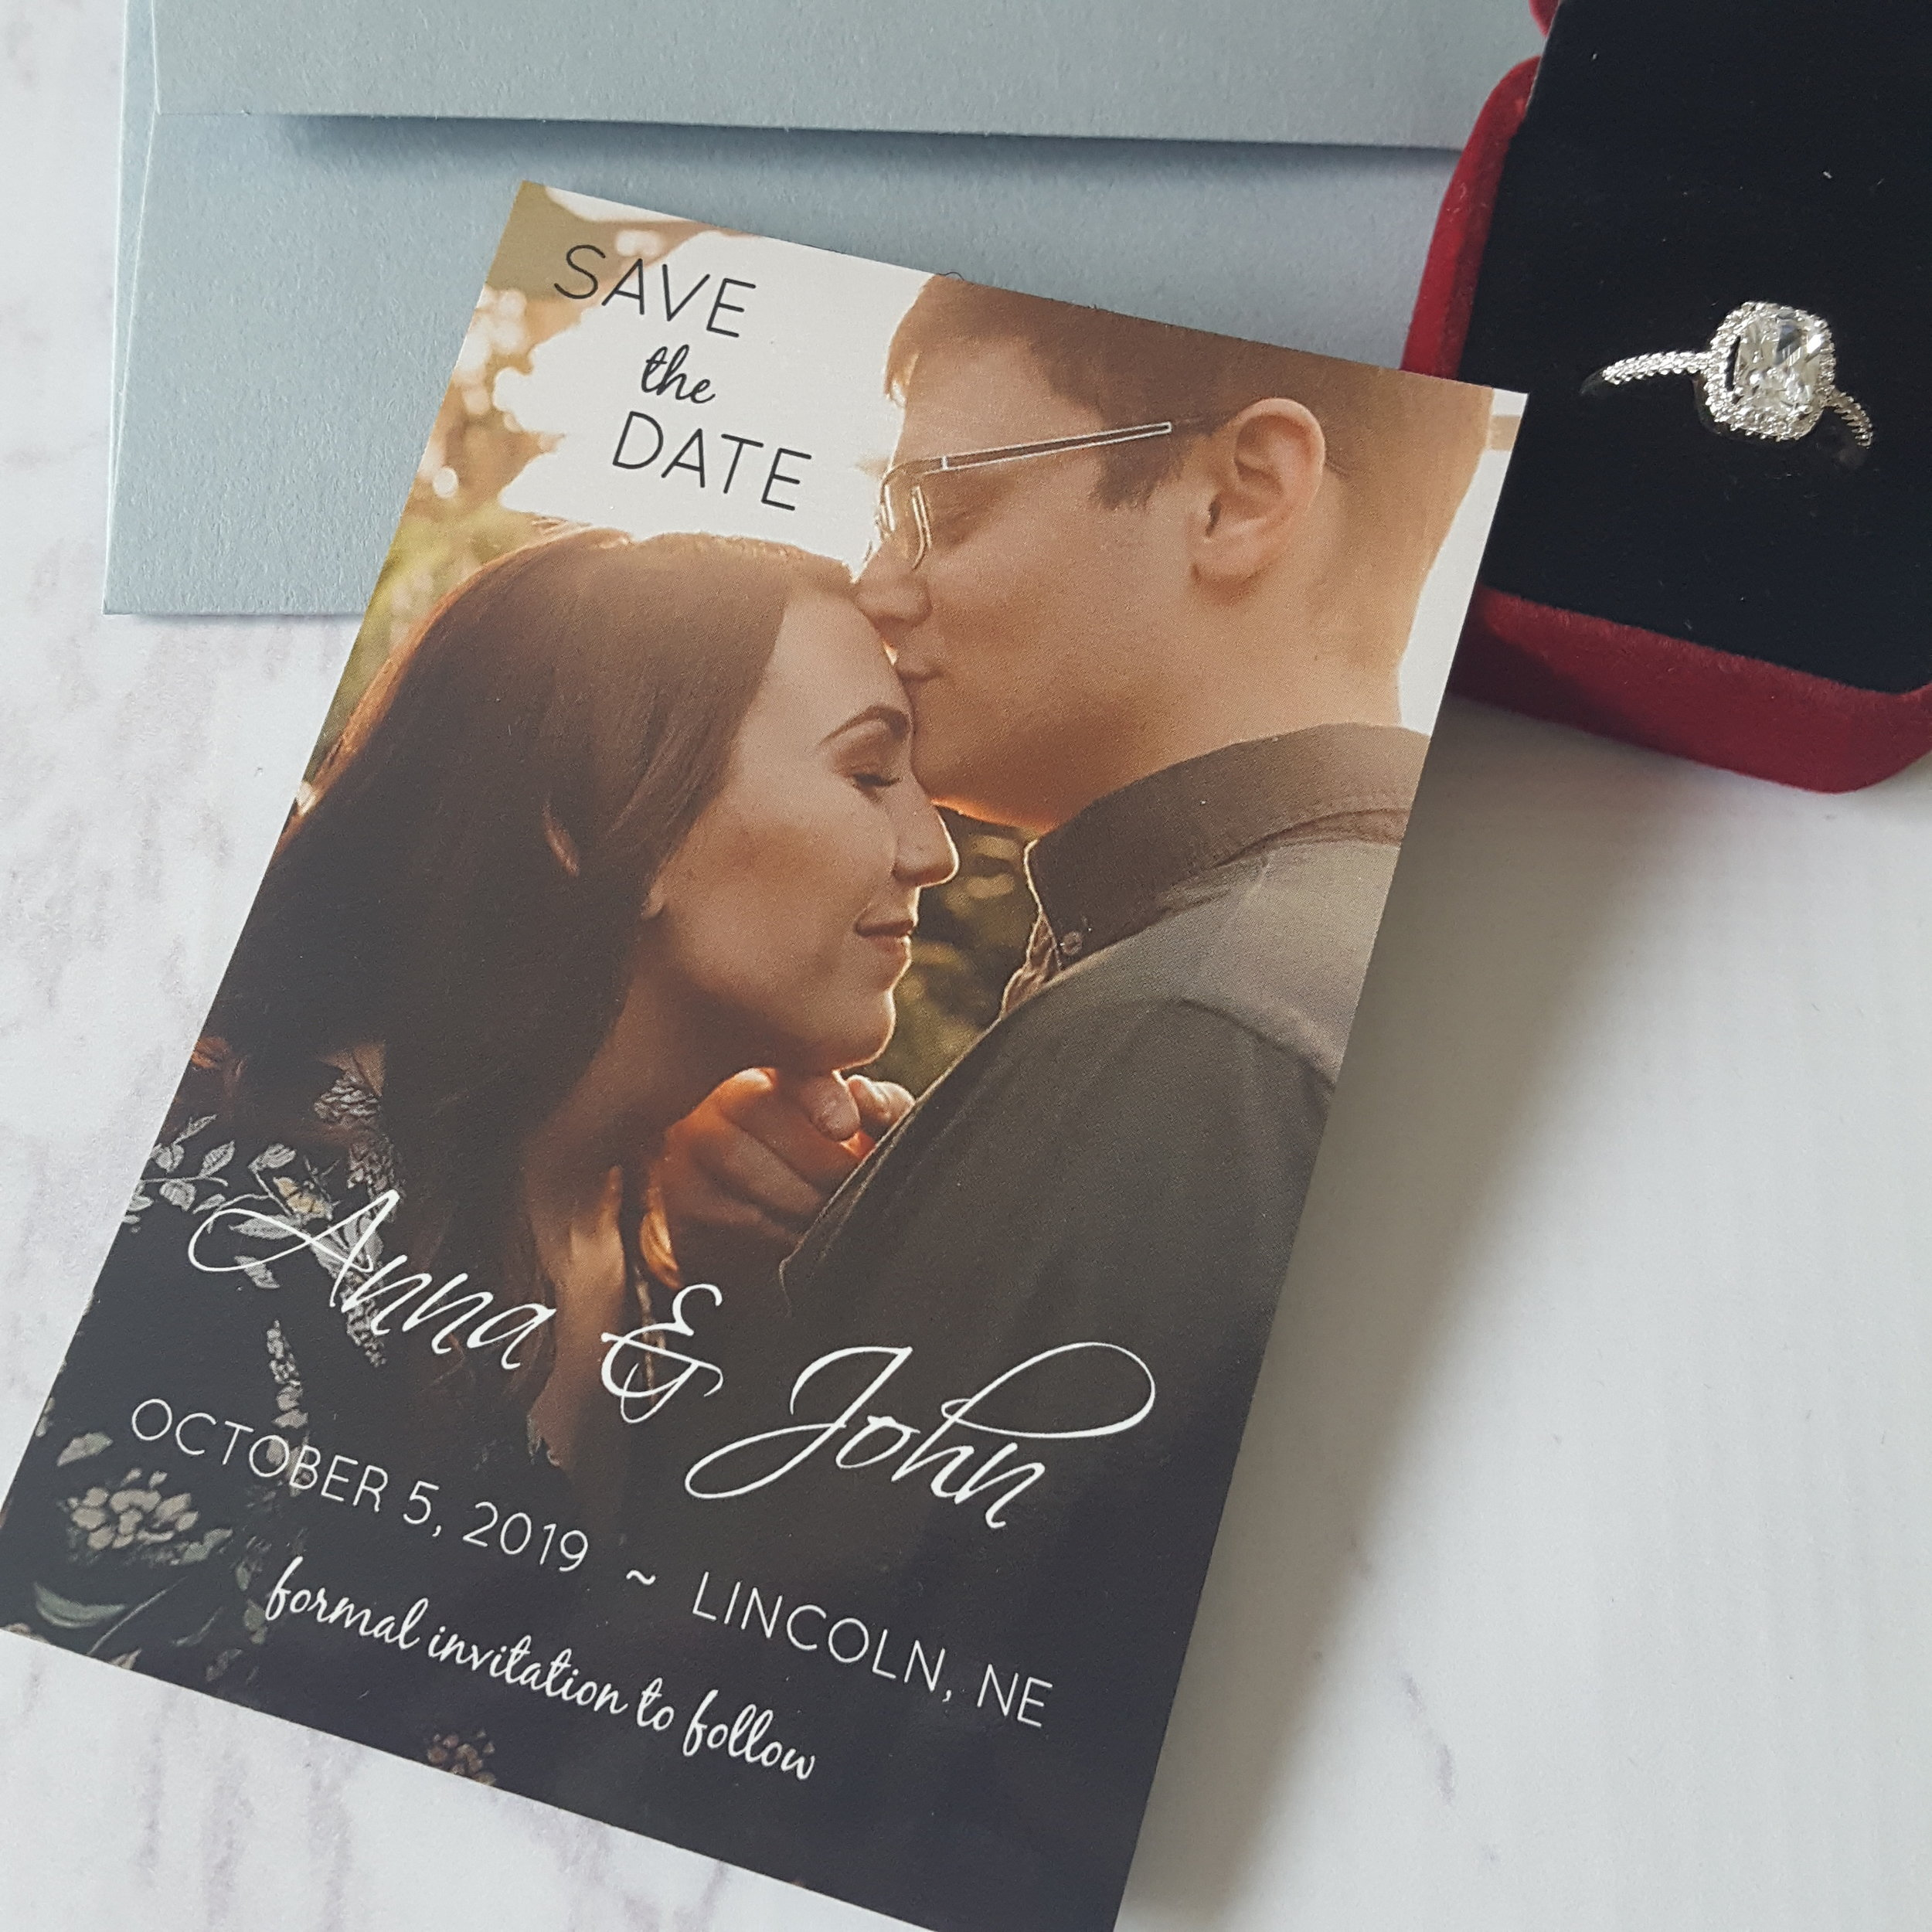 save the date magnet.jpg